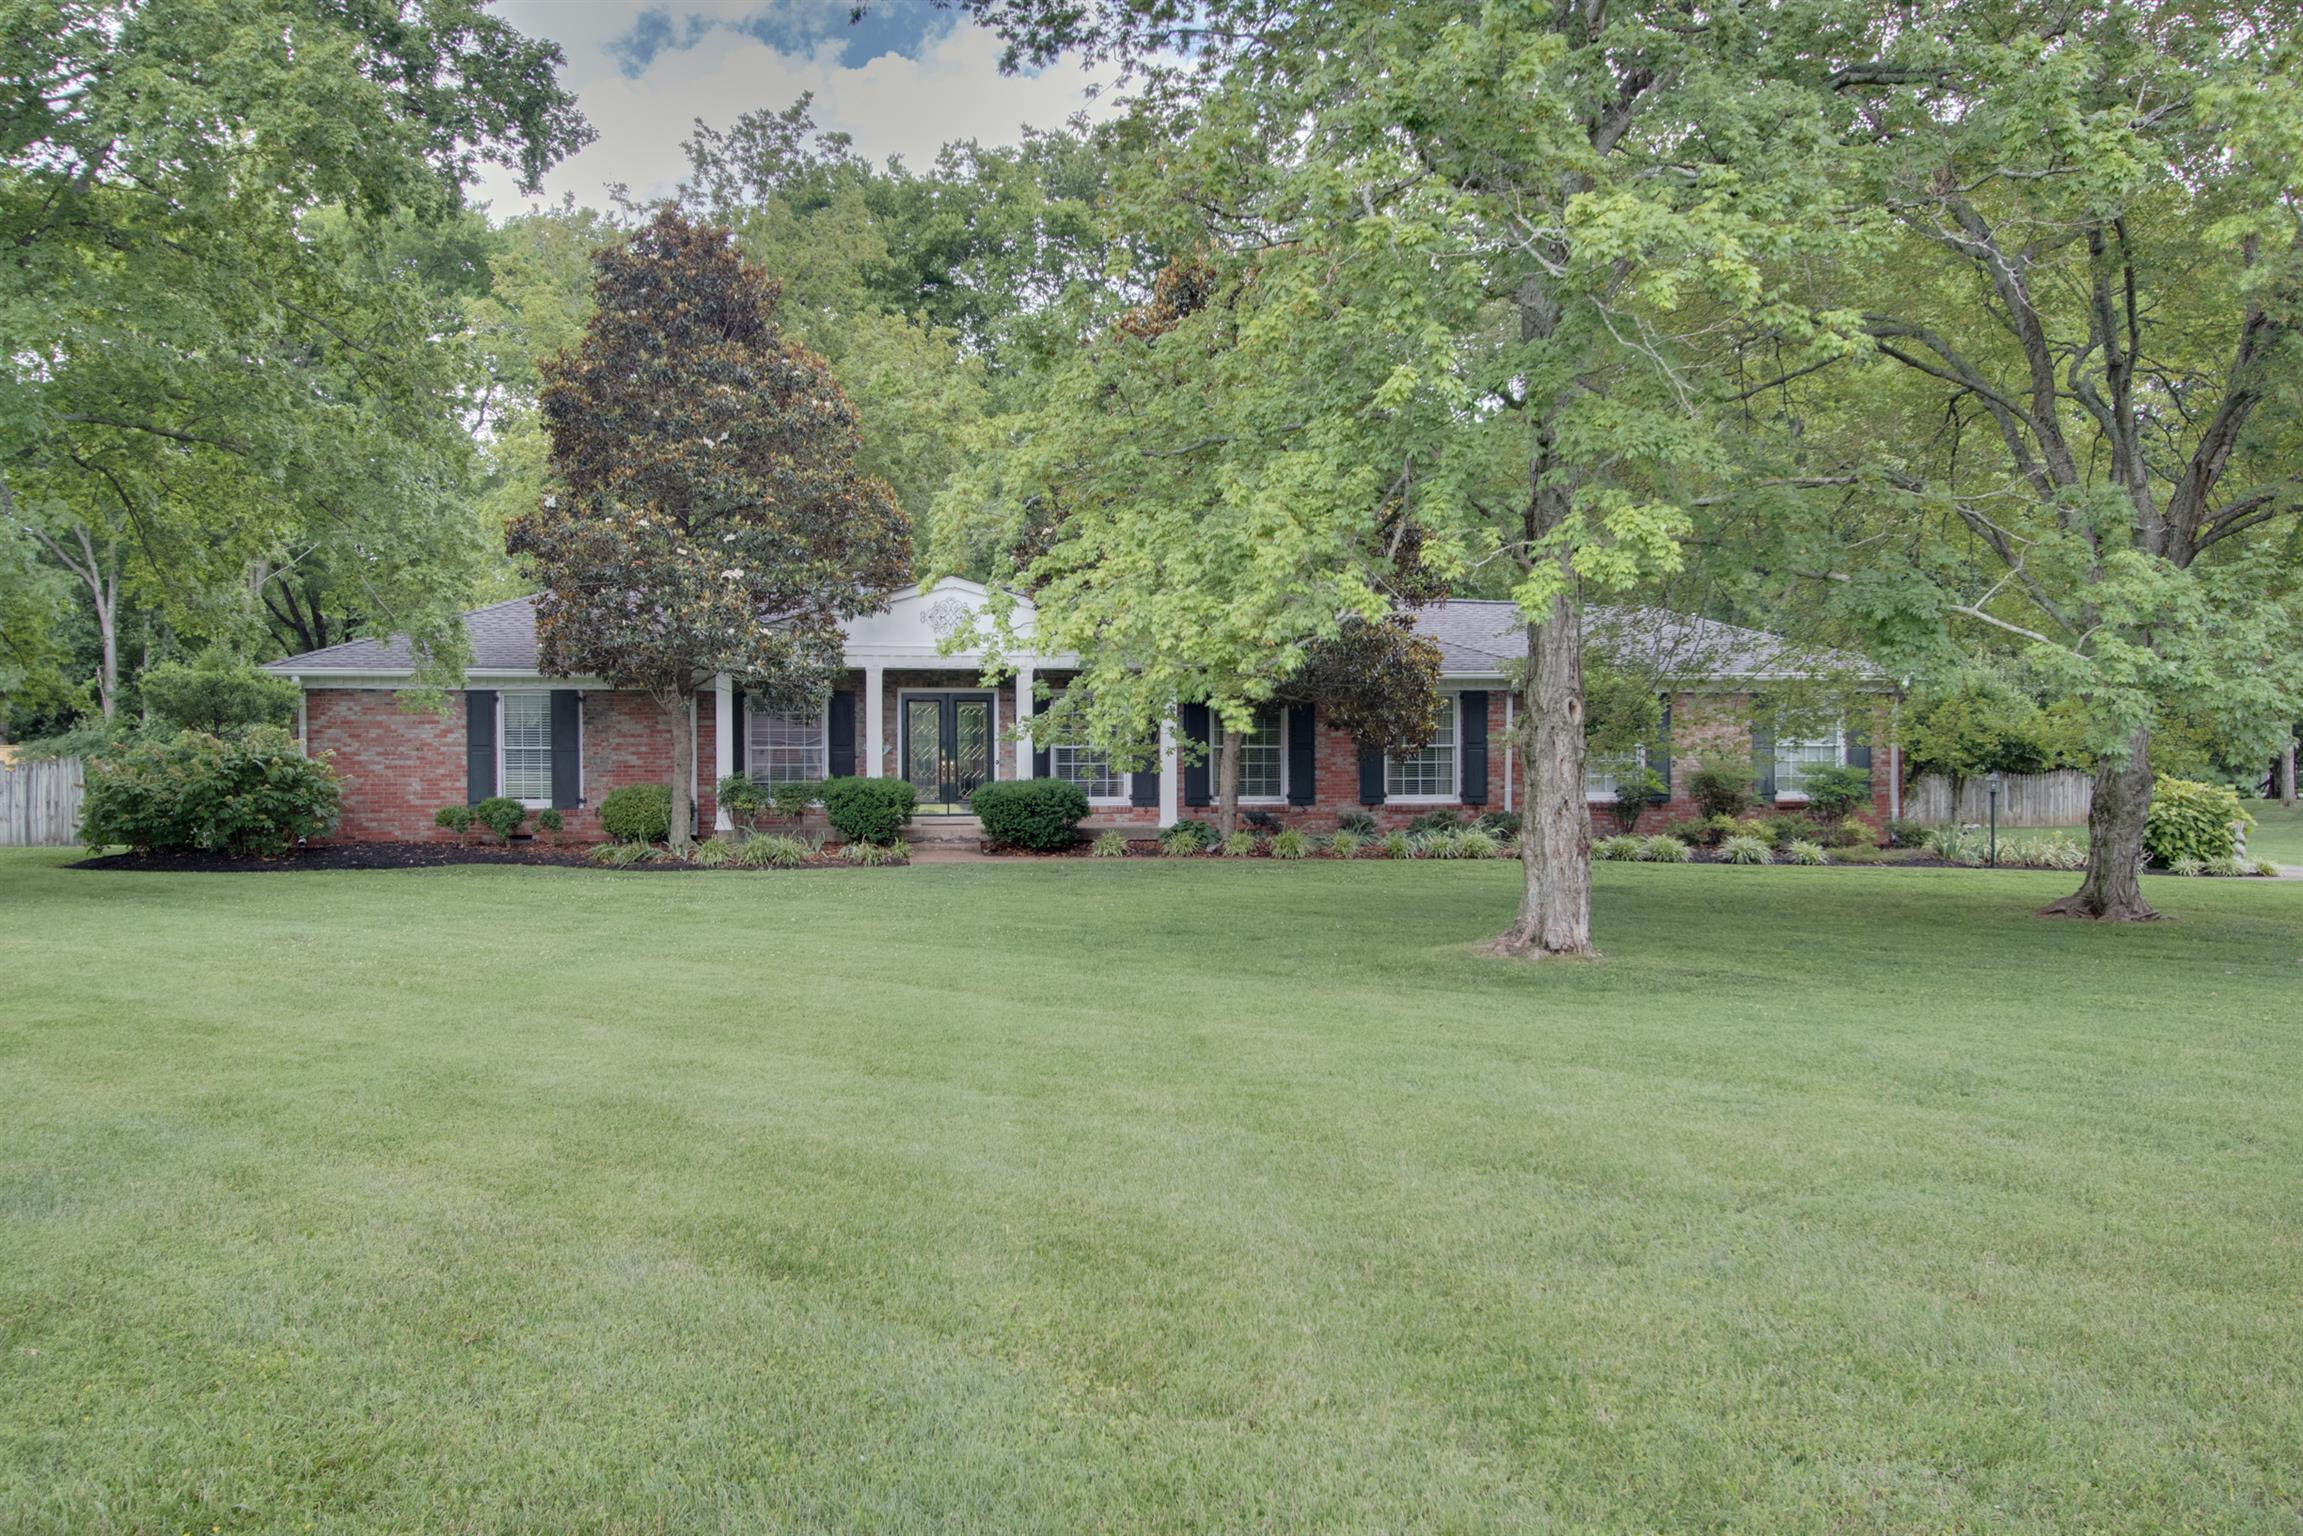 914 Waterswood Dr, Nashville-Southeast, Tennessee